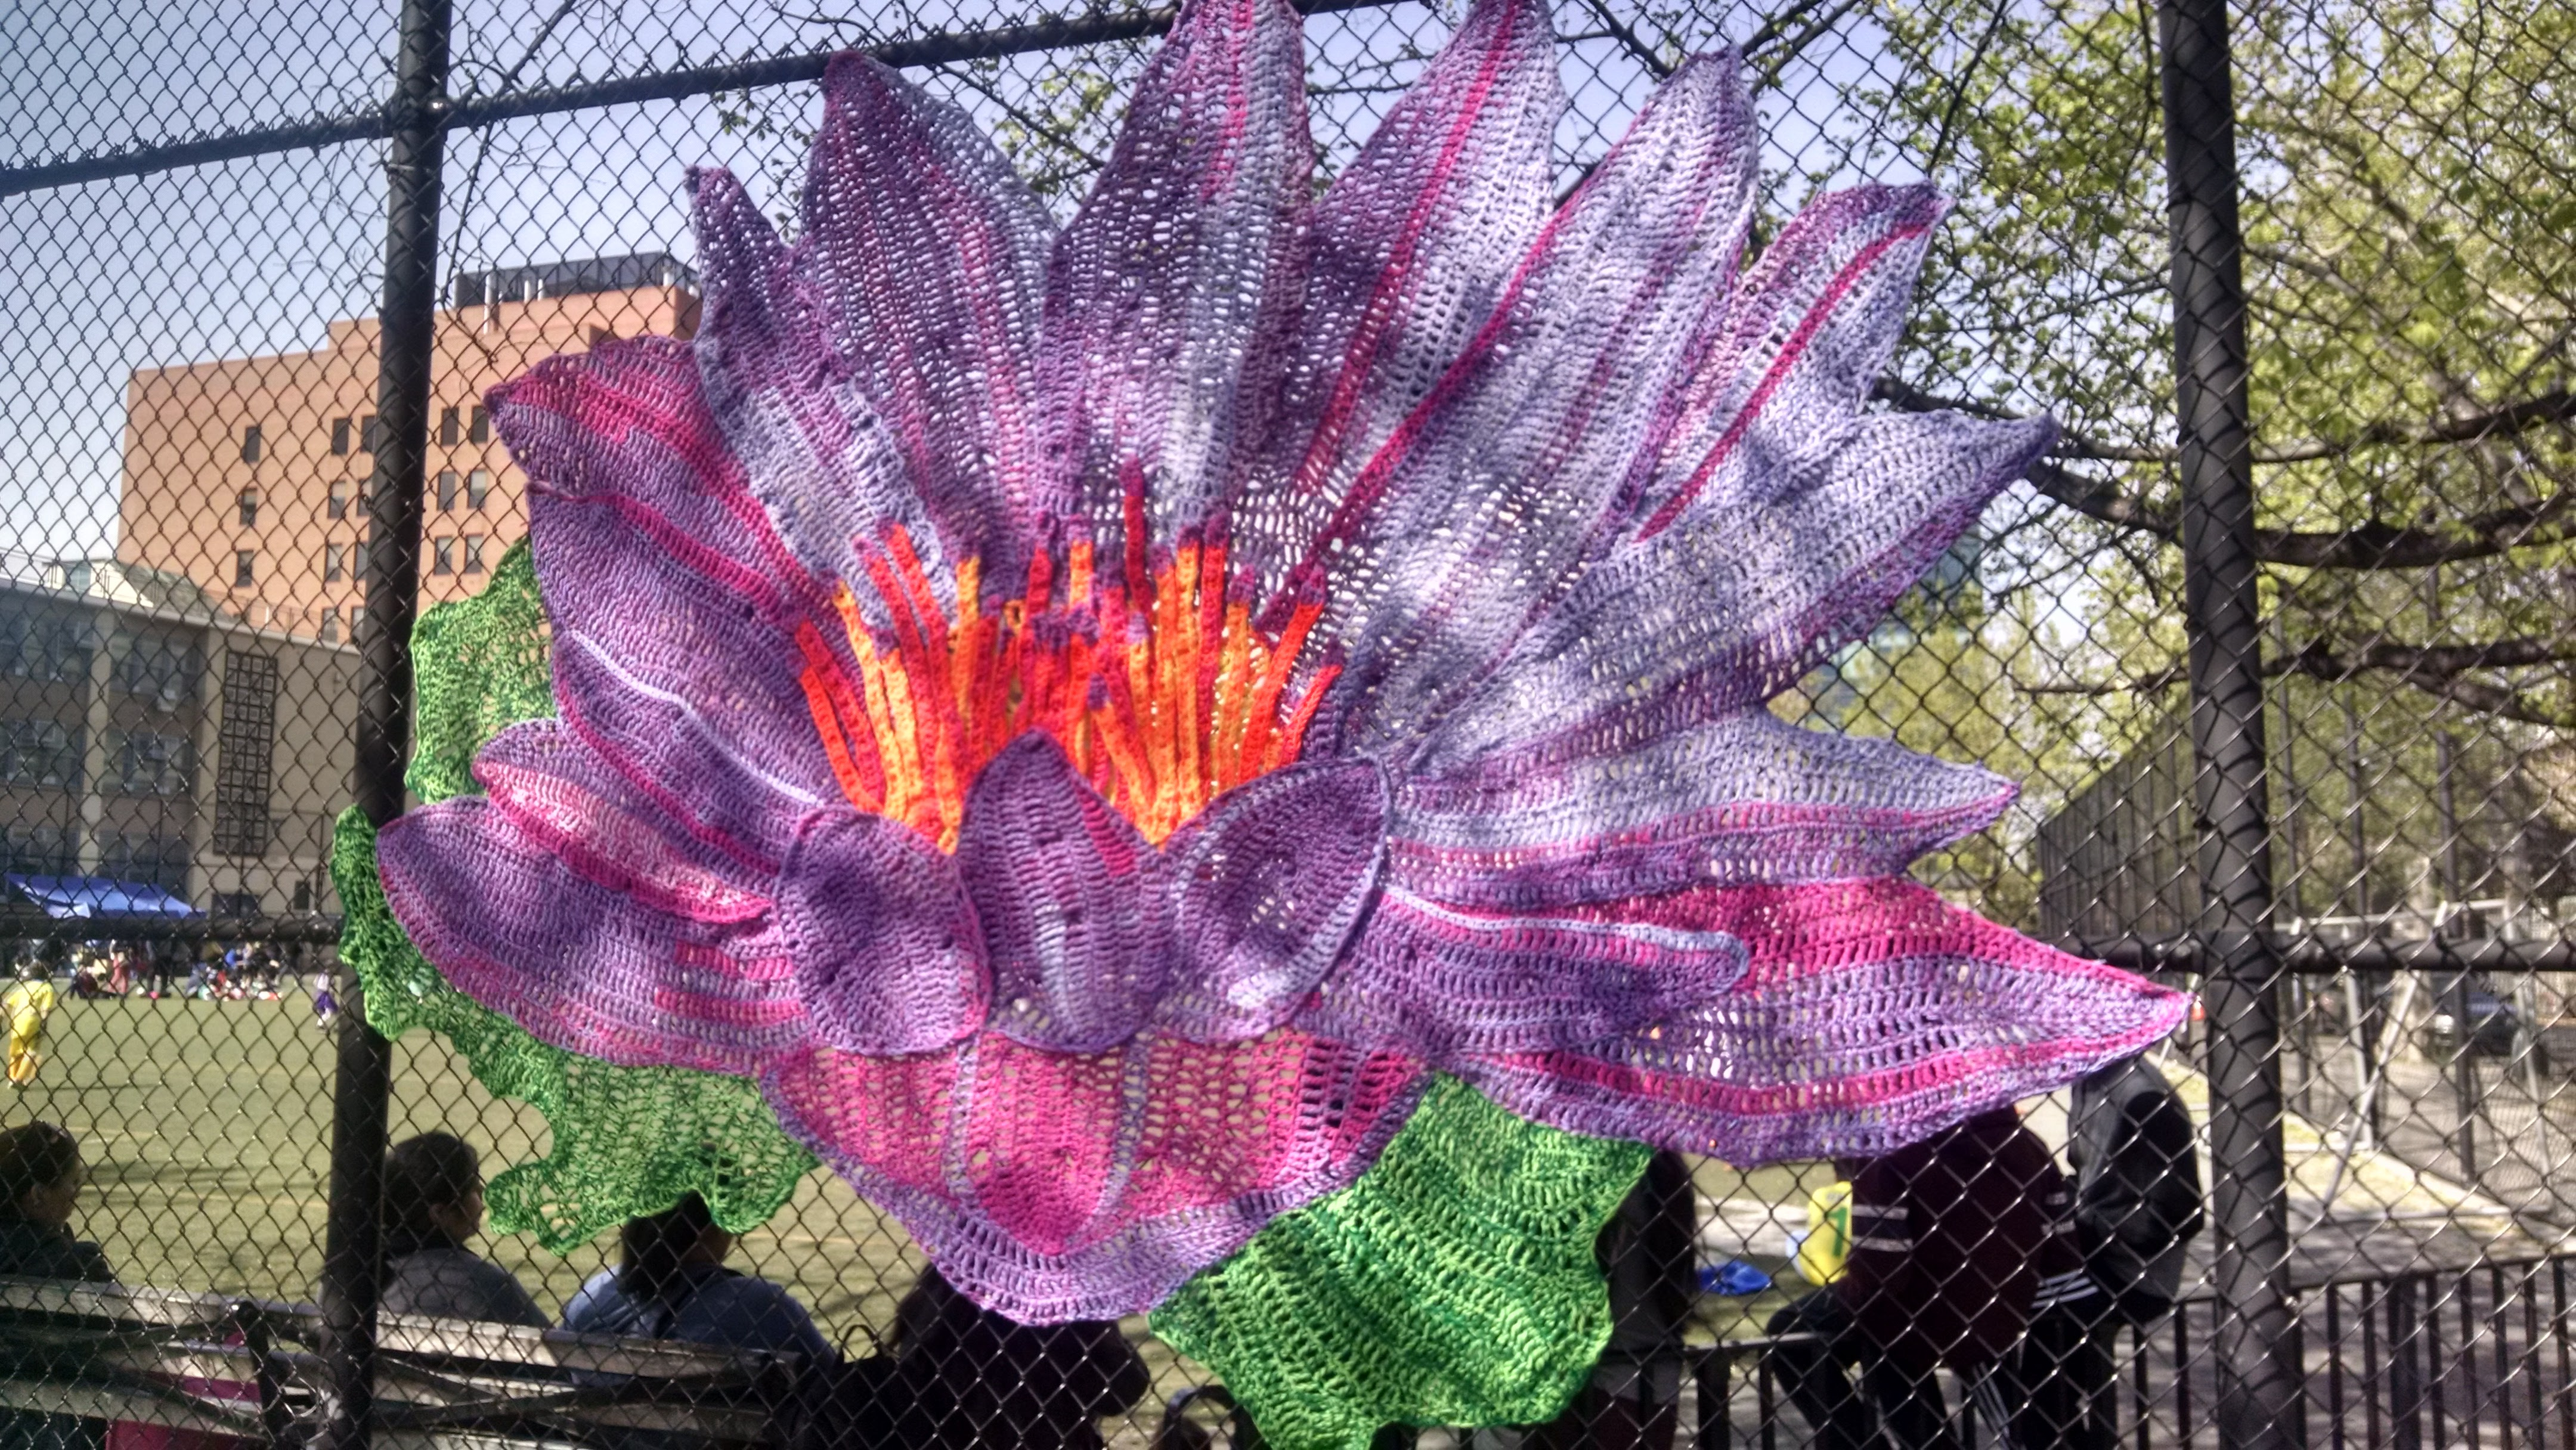 yarn weaved into chain link fence to make a large flower of pink and purple